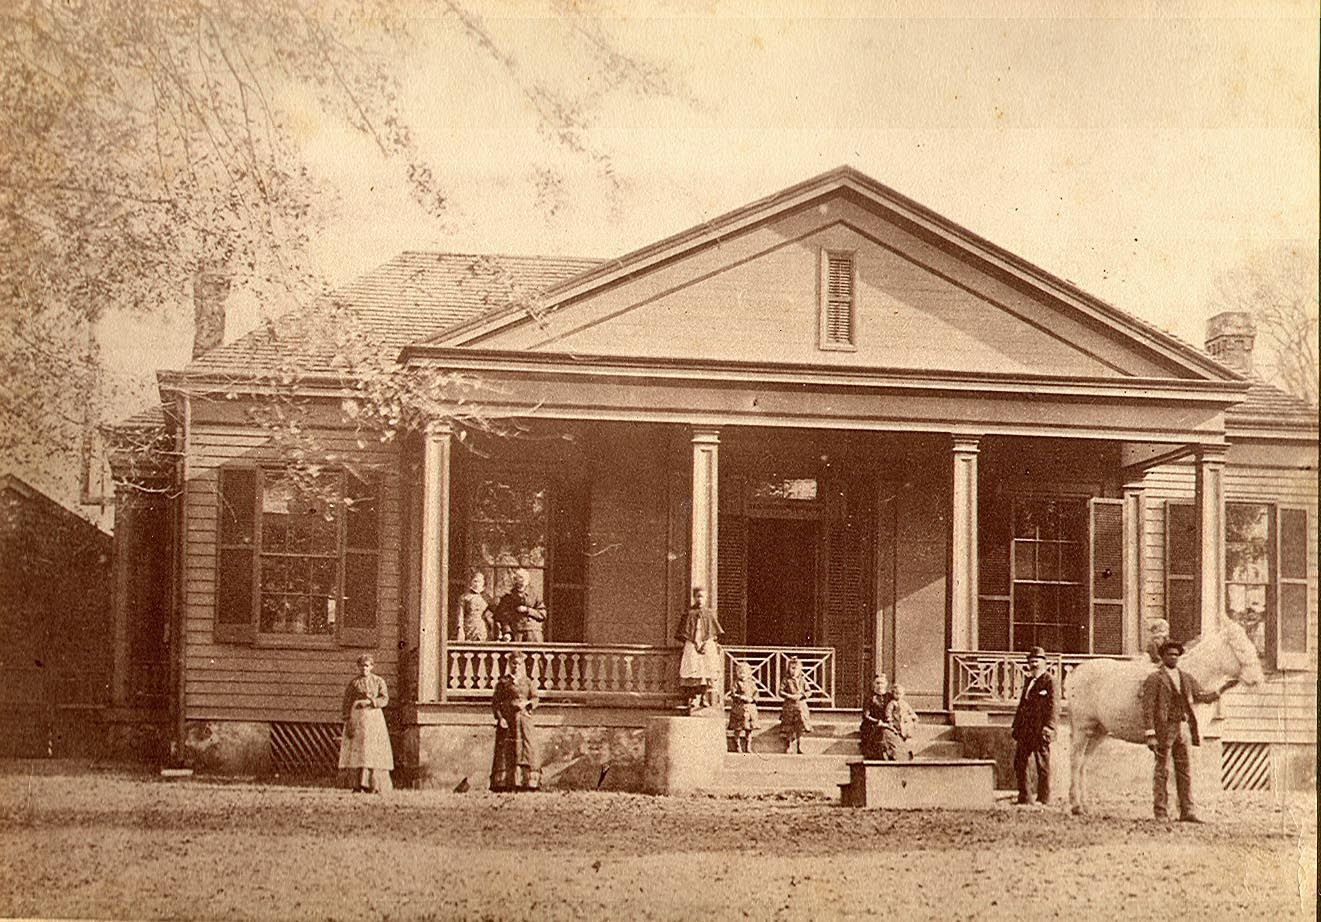 Mississippi jefferson county harriston - Mississippi Early Picture Of Bed Breakfast Near Natchez Trace Http Www Josephstonehouse